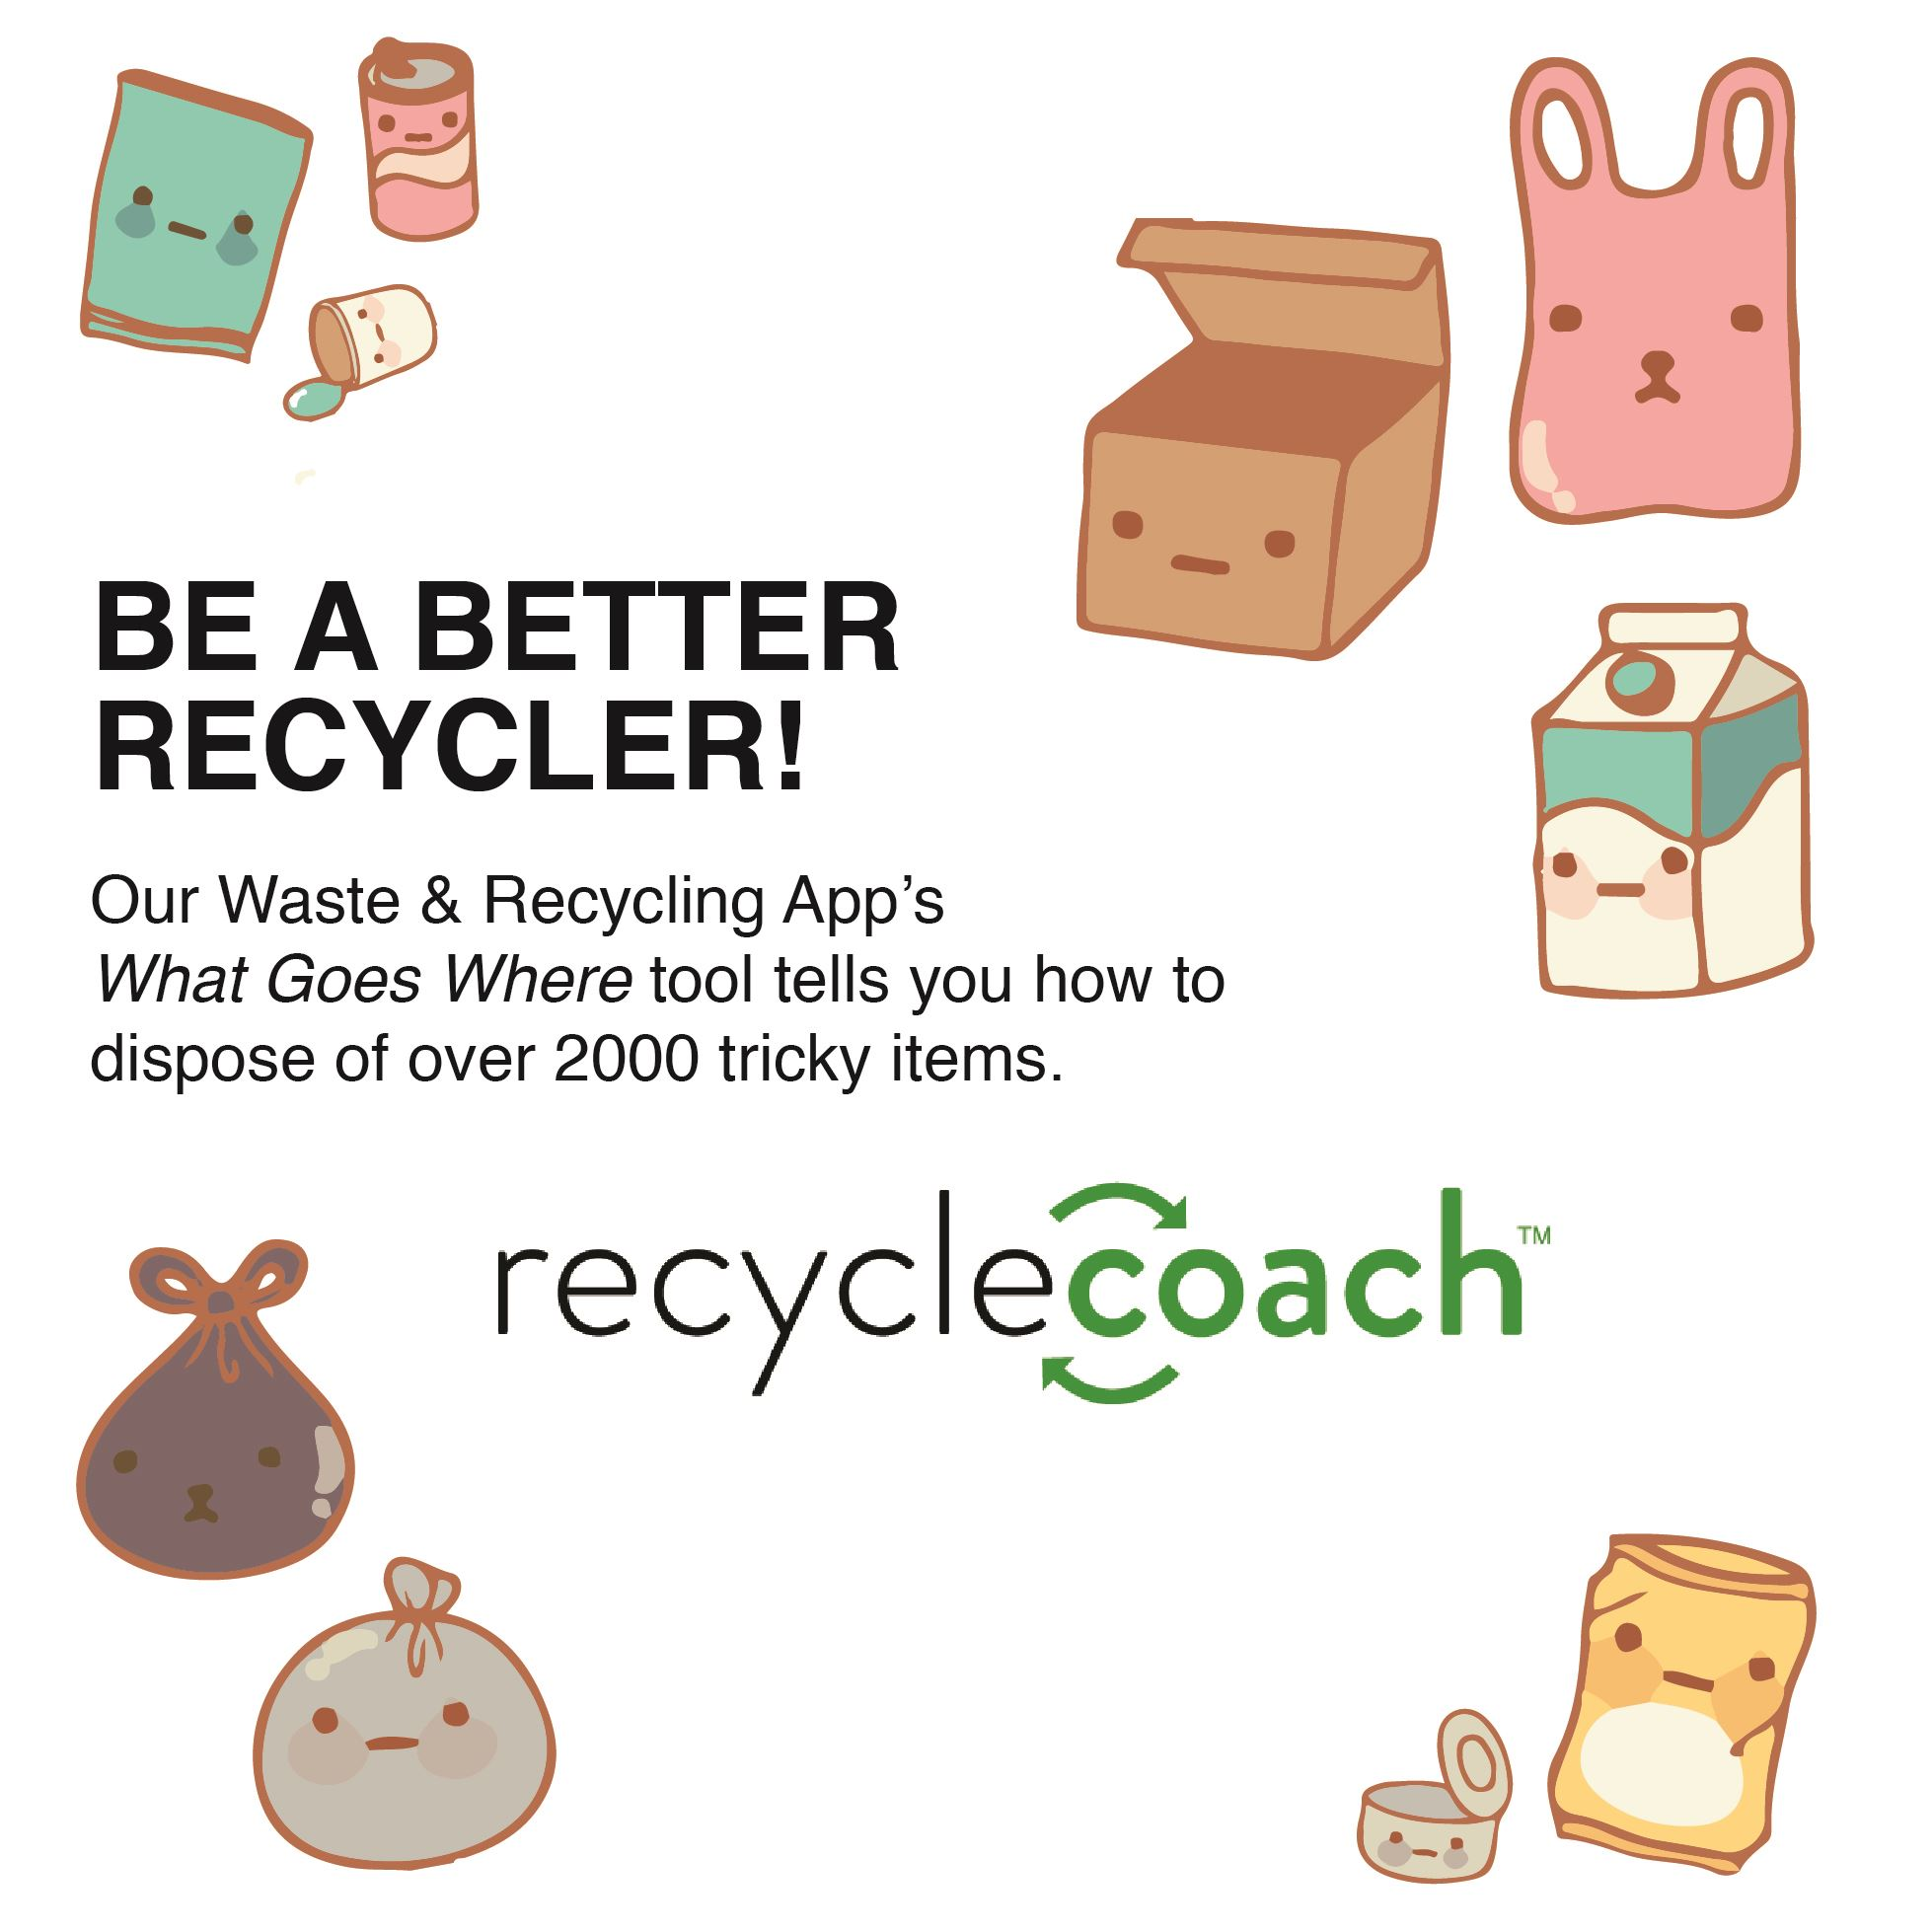 facebook-rc-july2017-recyclecoach-03